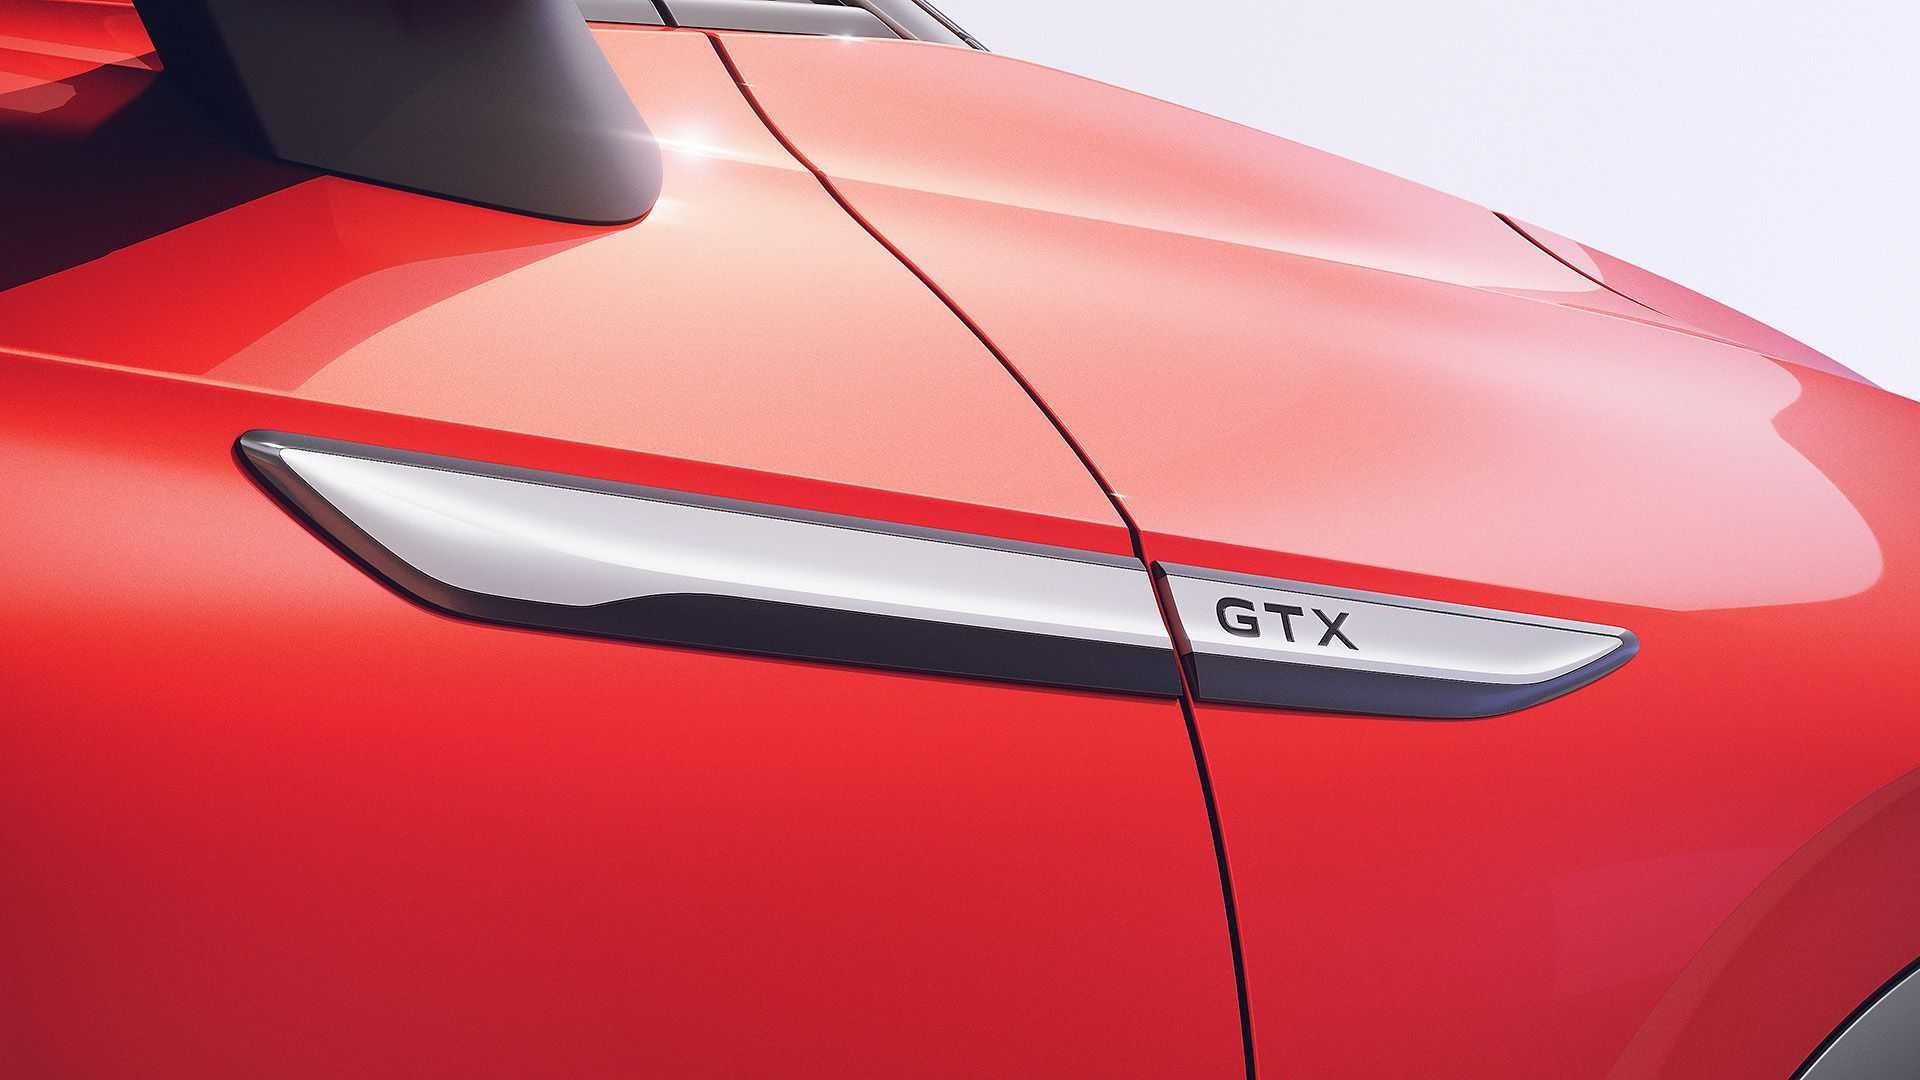 To make it distinctive, the VW ID.4 GTX gets a host of GTX badging at different places across exterior.